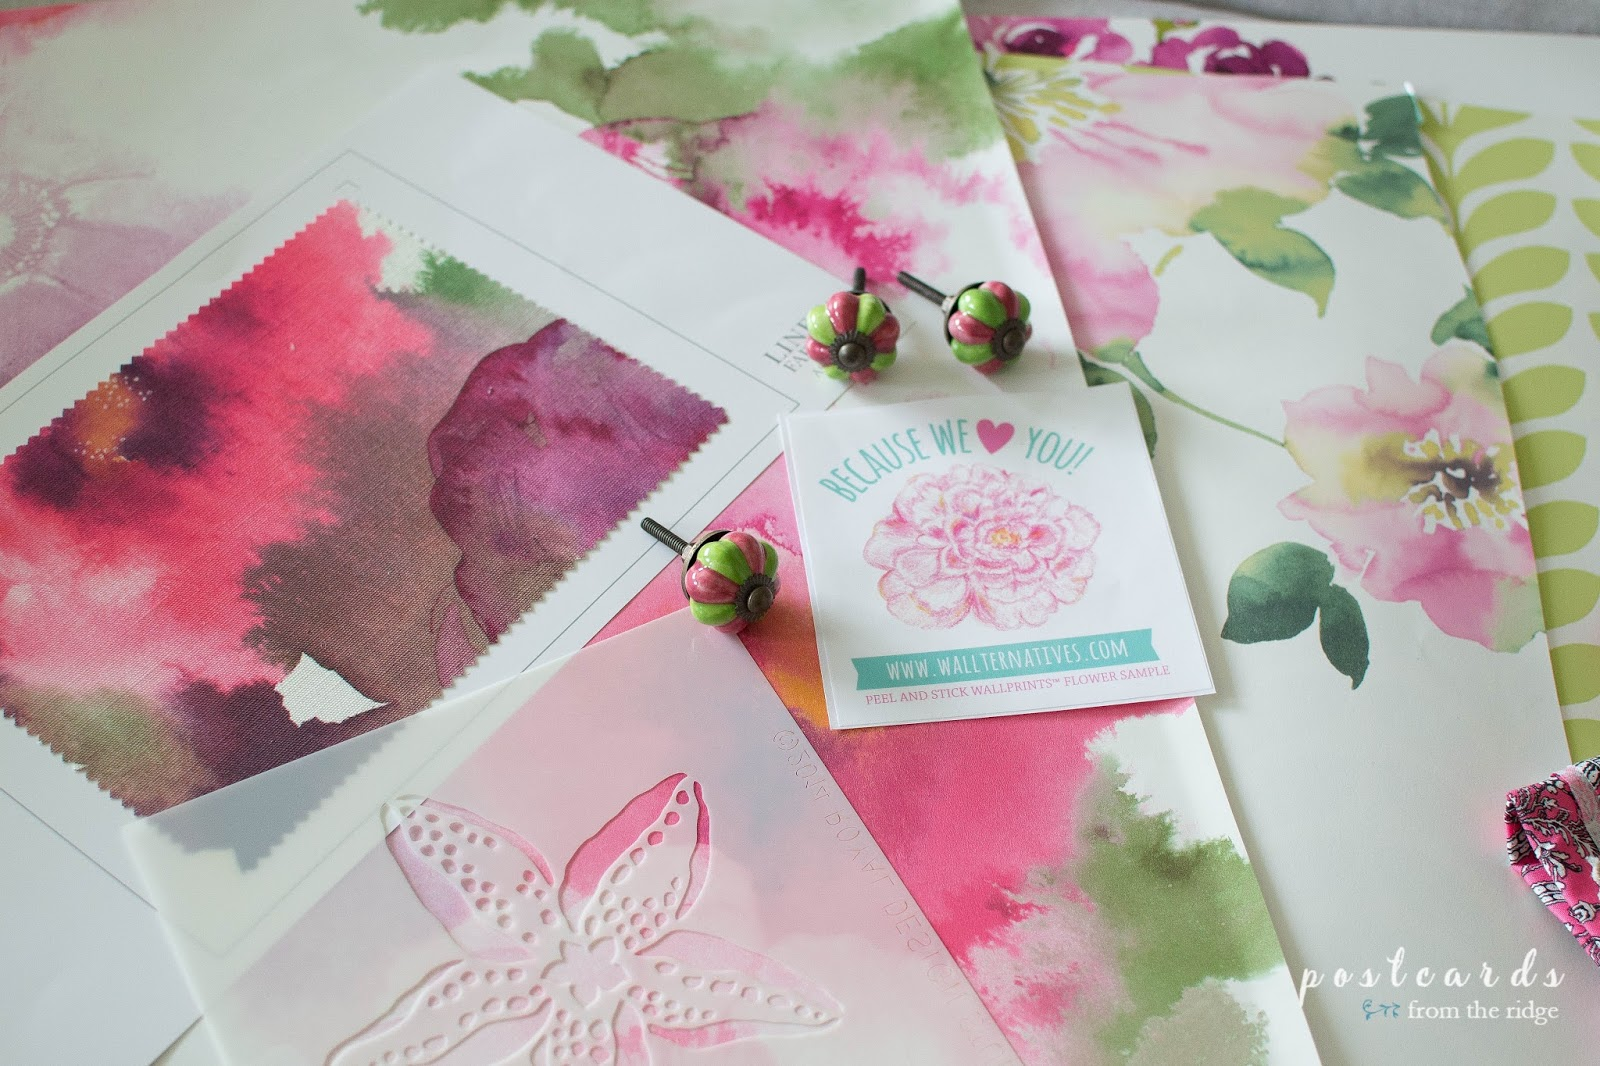 Crafter S Delight Craft Supplies Giveaway Postcards From The Ridge